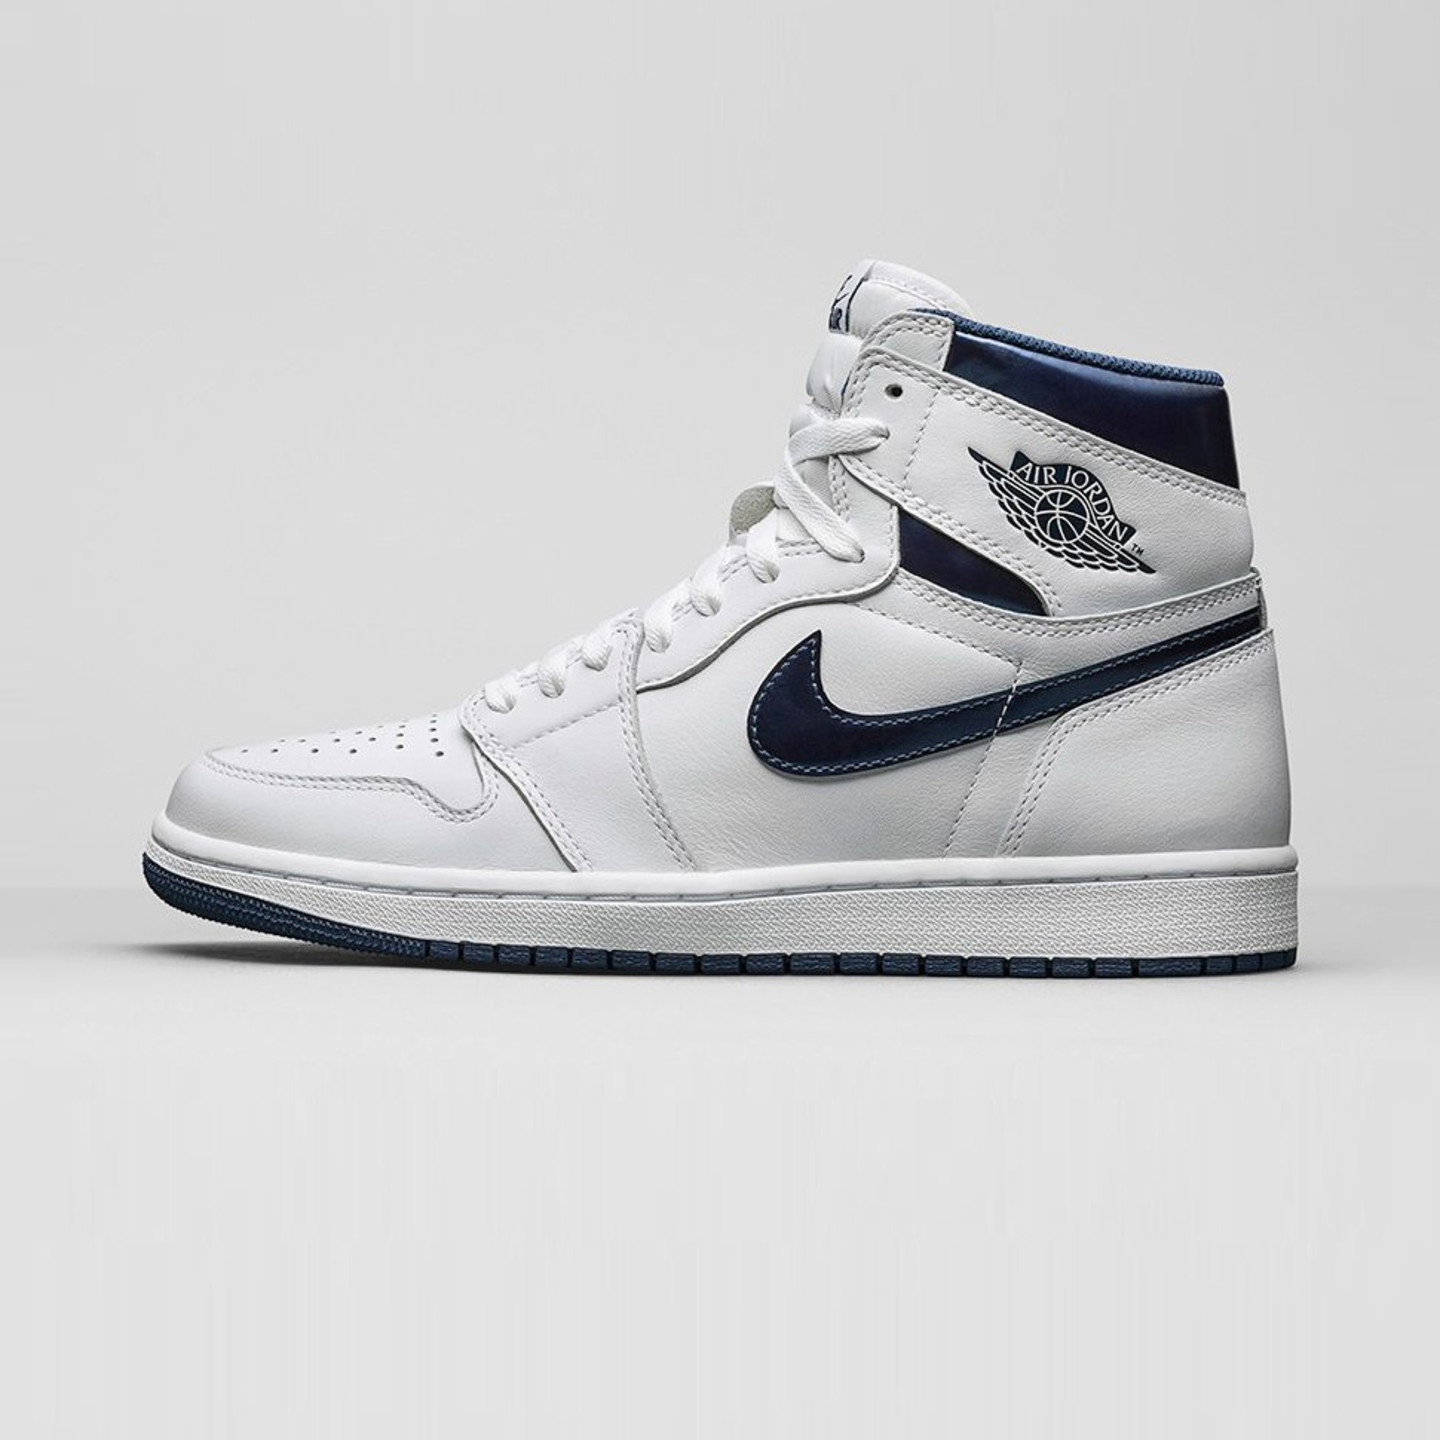 Jordan Air Jordan 1 Retro High OG 'Metallic Navy' White / Midnight Navy 555088-106-45